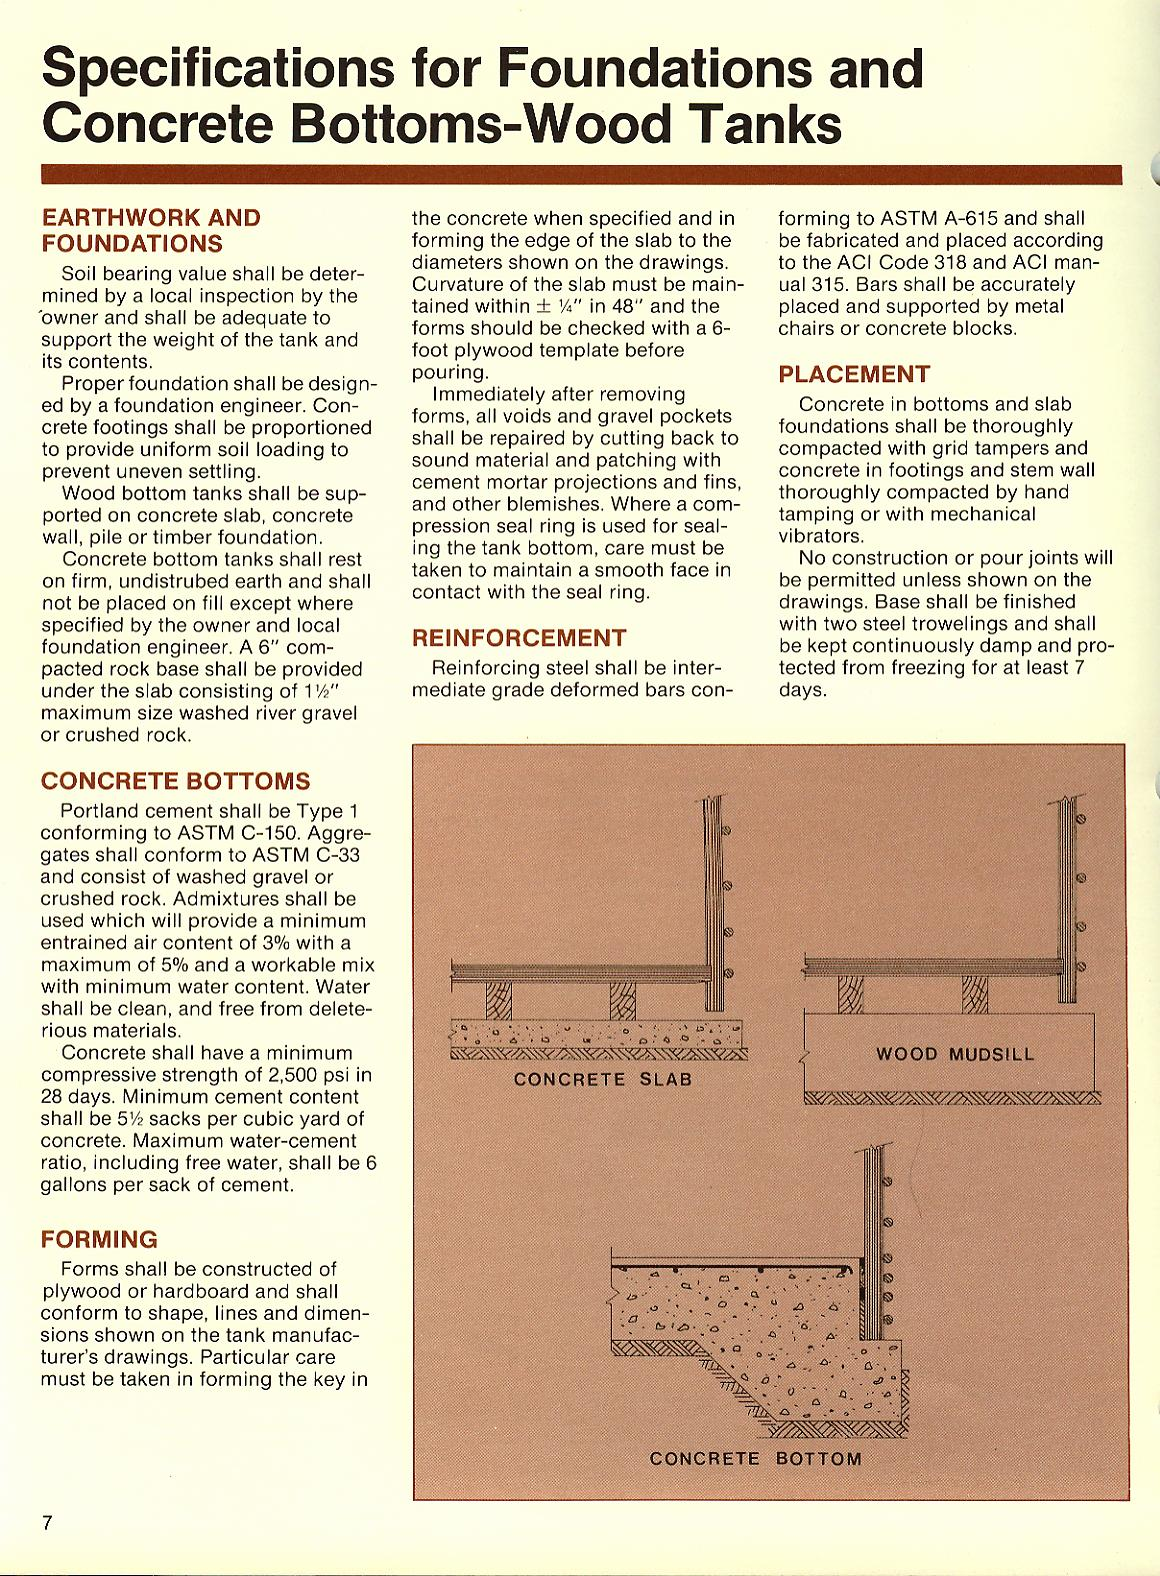 WOODEN PENSTOCK WEB PAGE